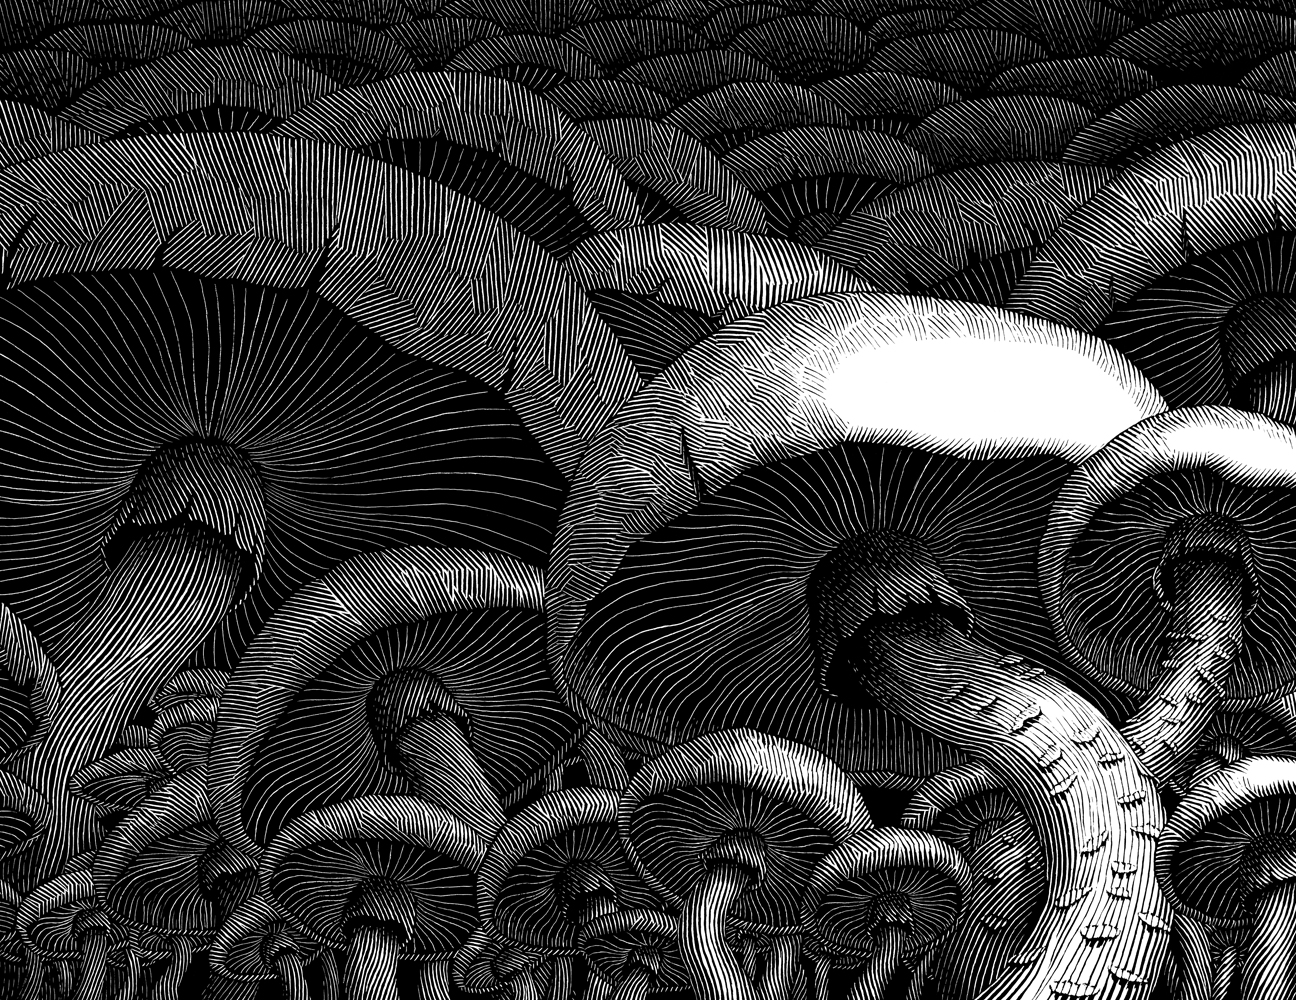 Dark Eden 1, Mushrooms